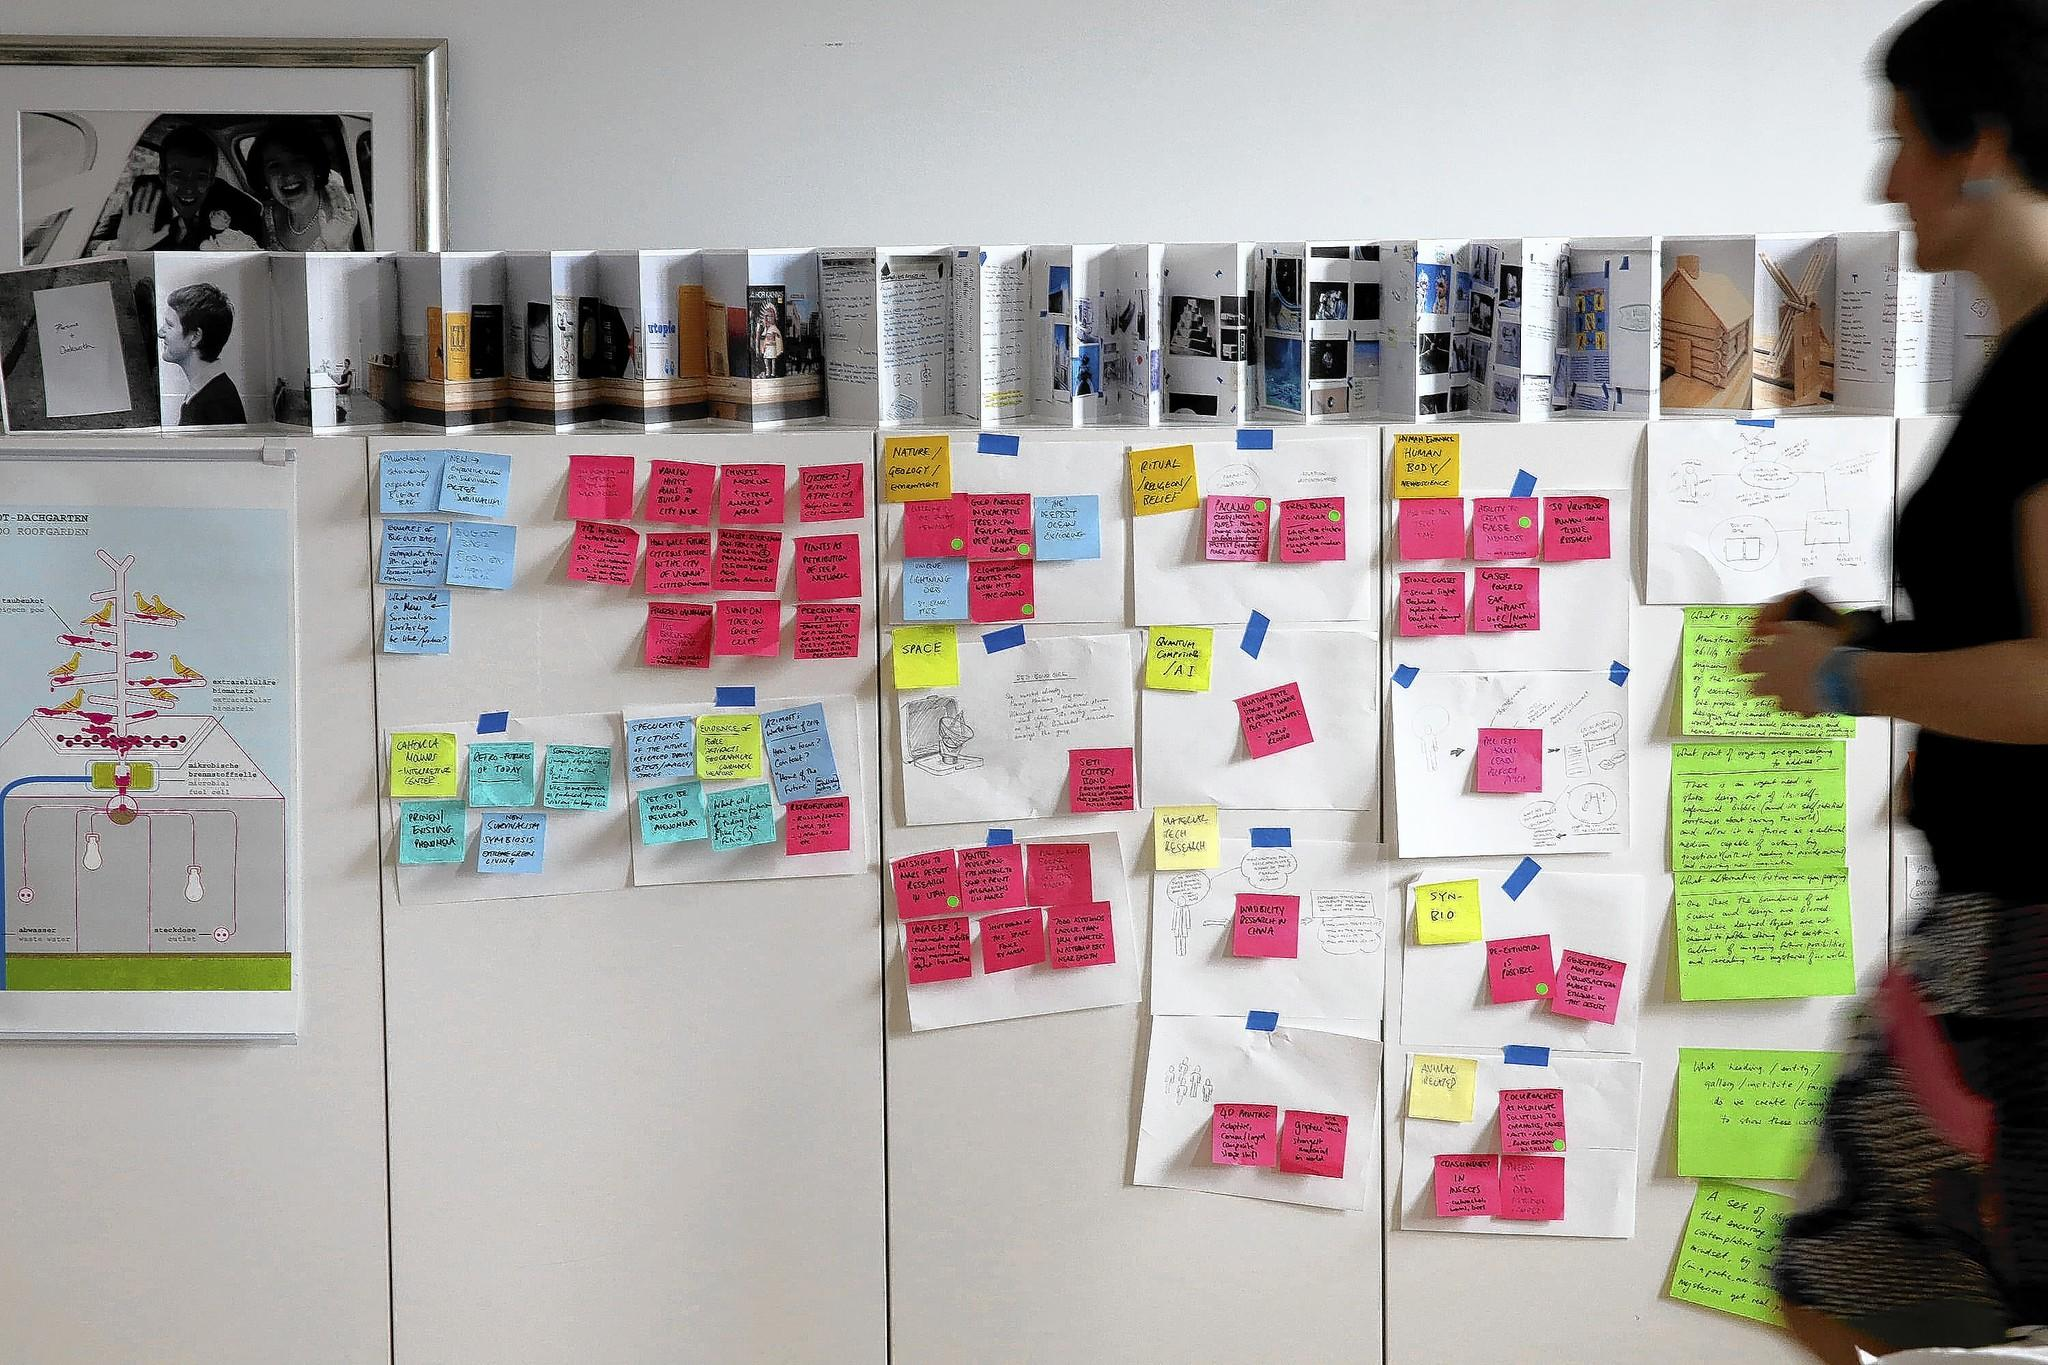 Speculative designer Jessica Charlesworth passes a display of sticky notes of various ideas, topics, and headlines used for brainstorming.